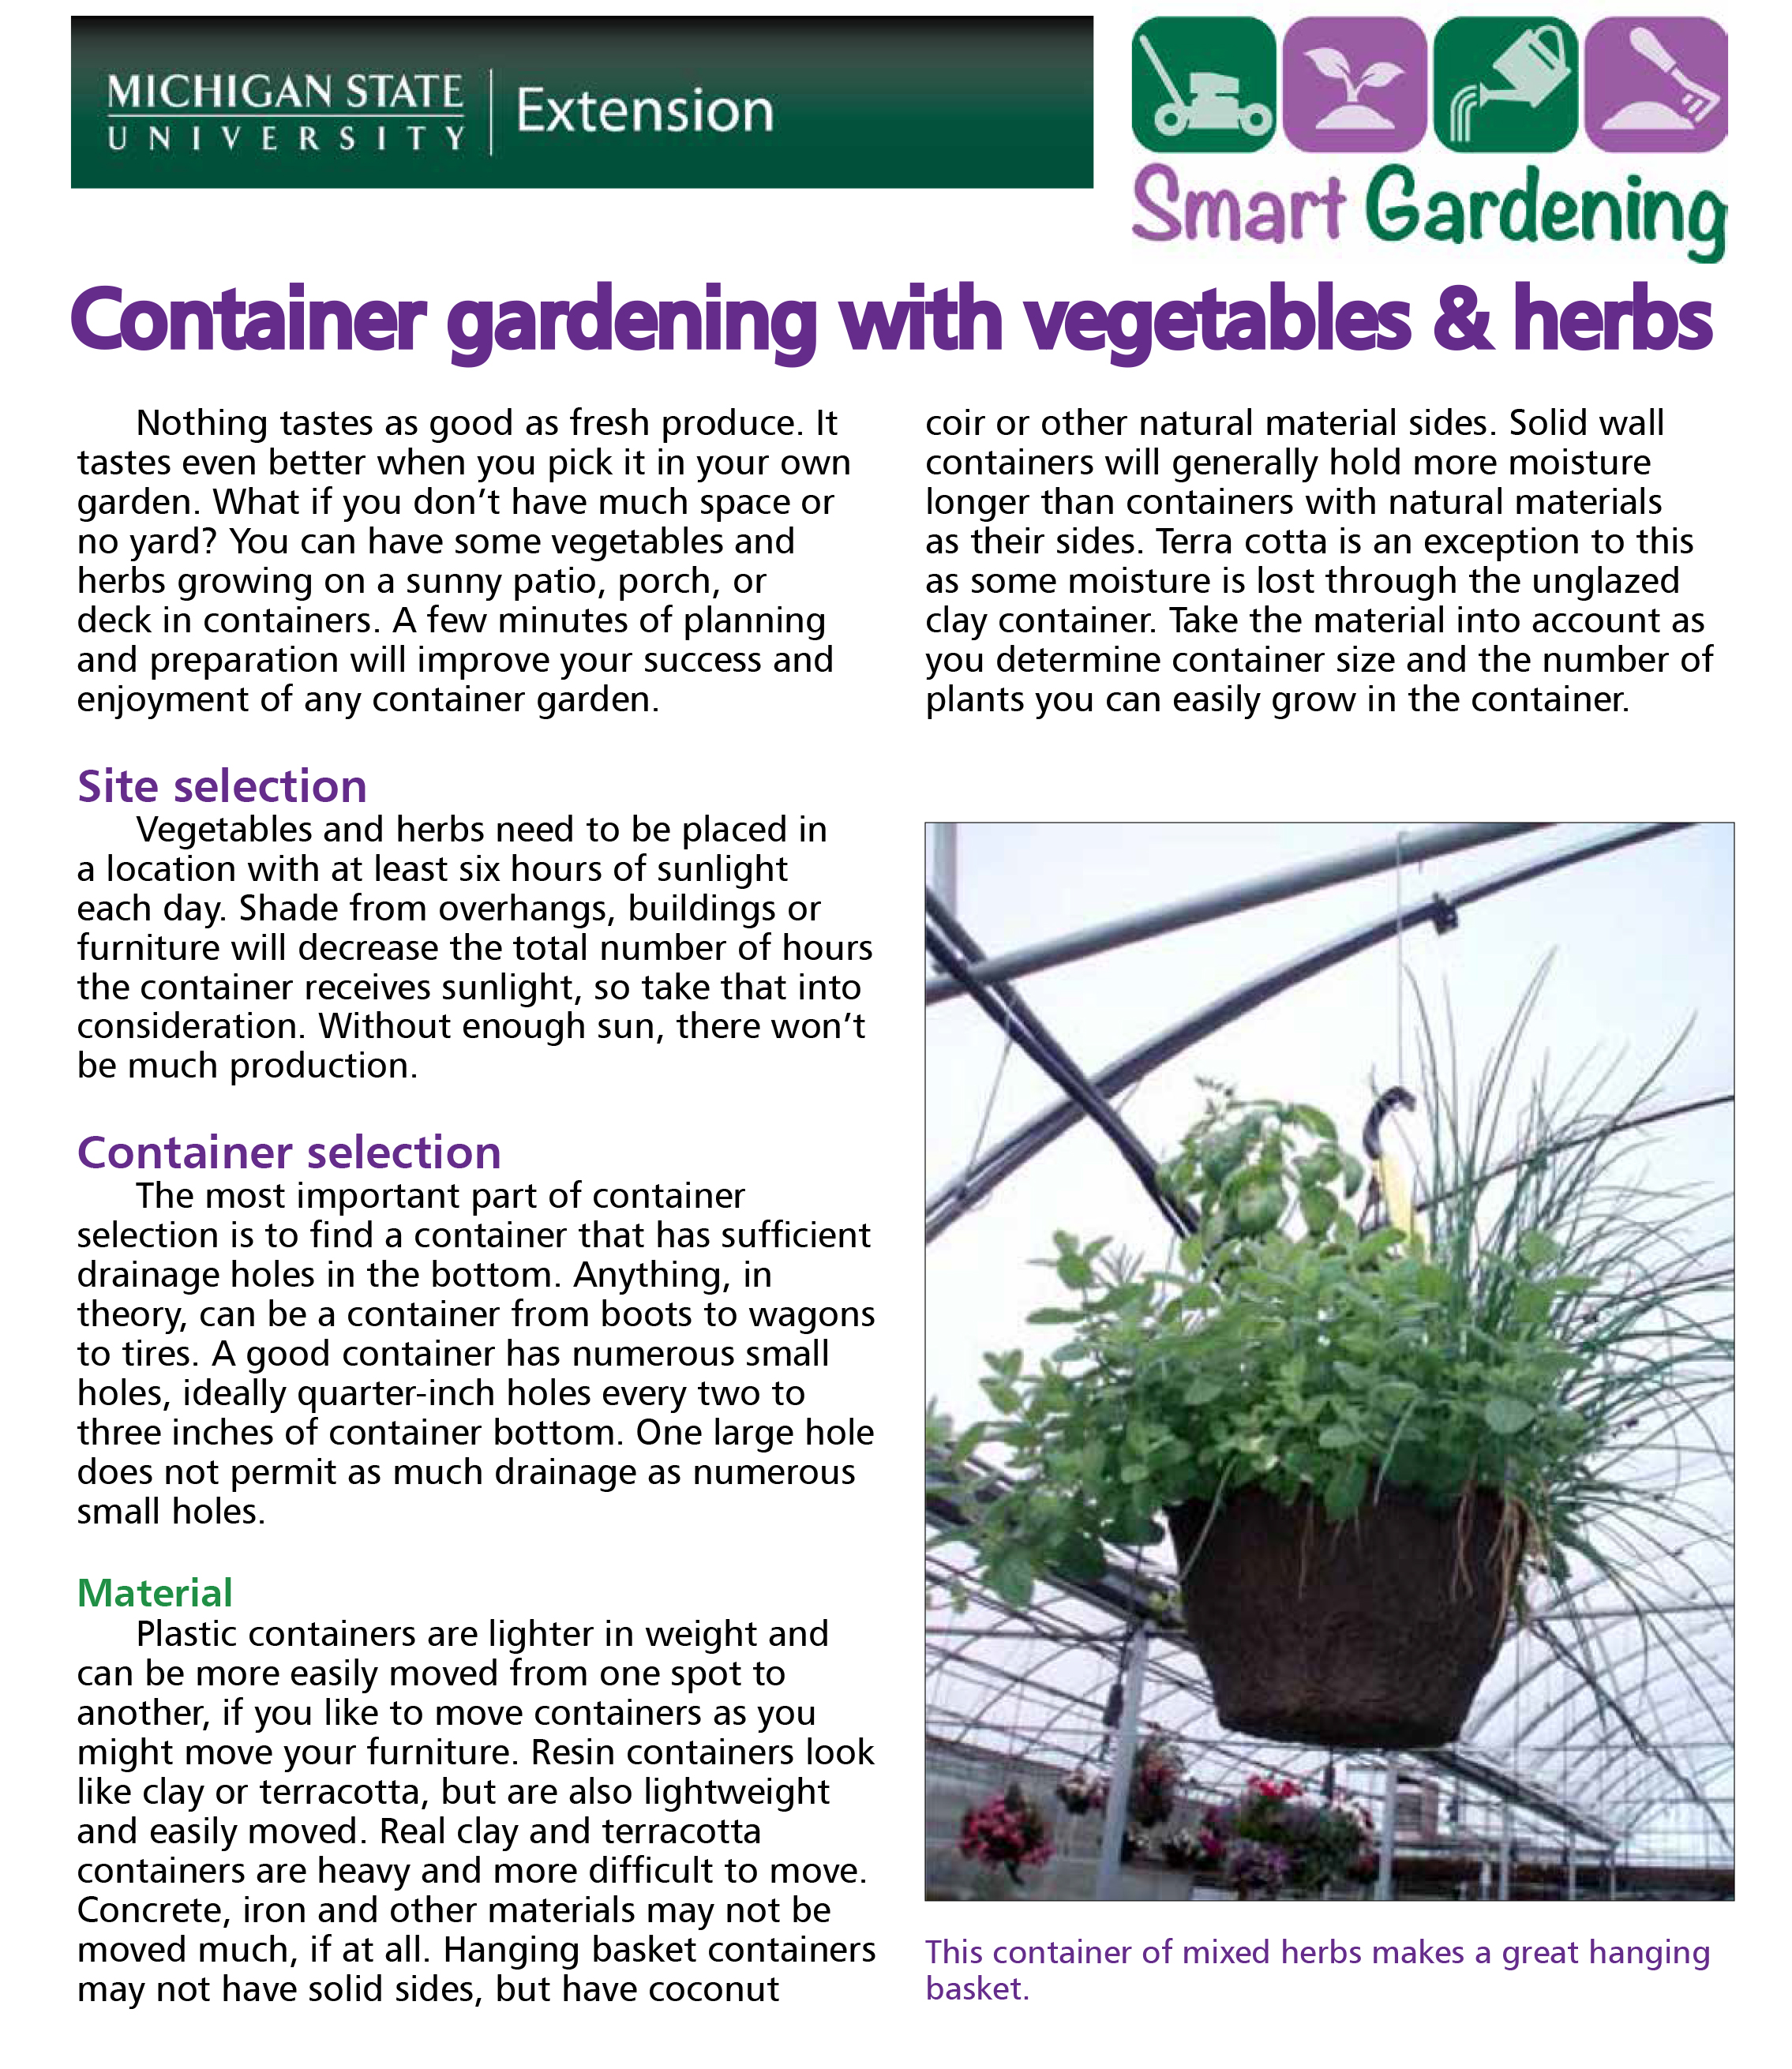 Container gardening with vegetables & herbs tip sheet